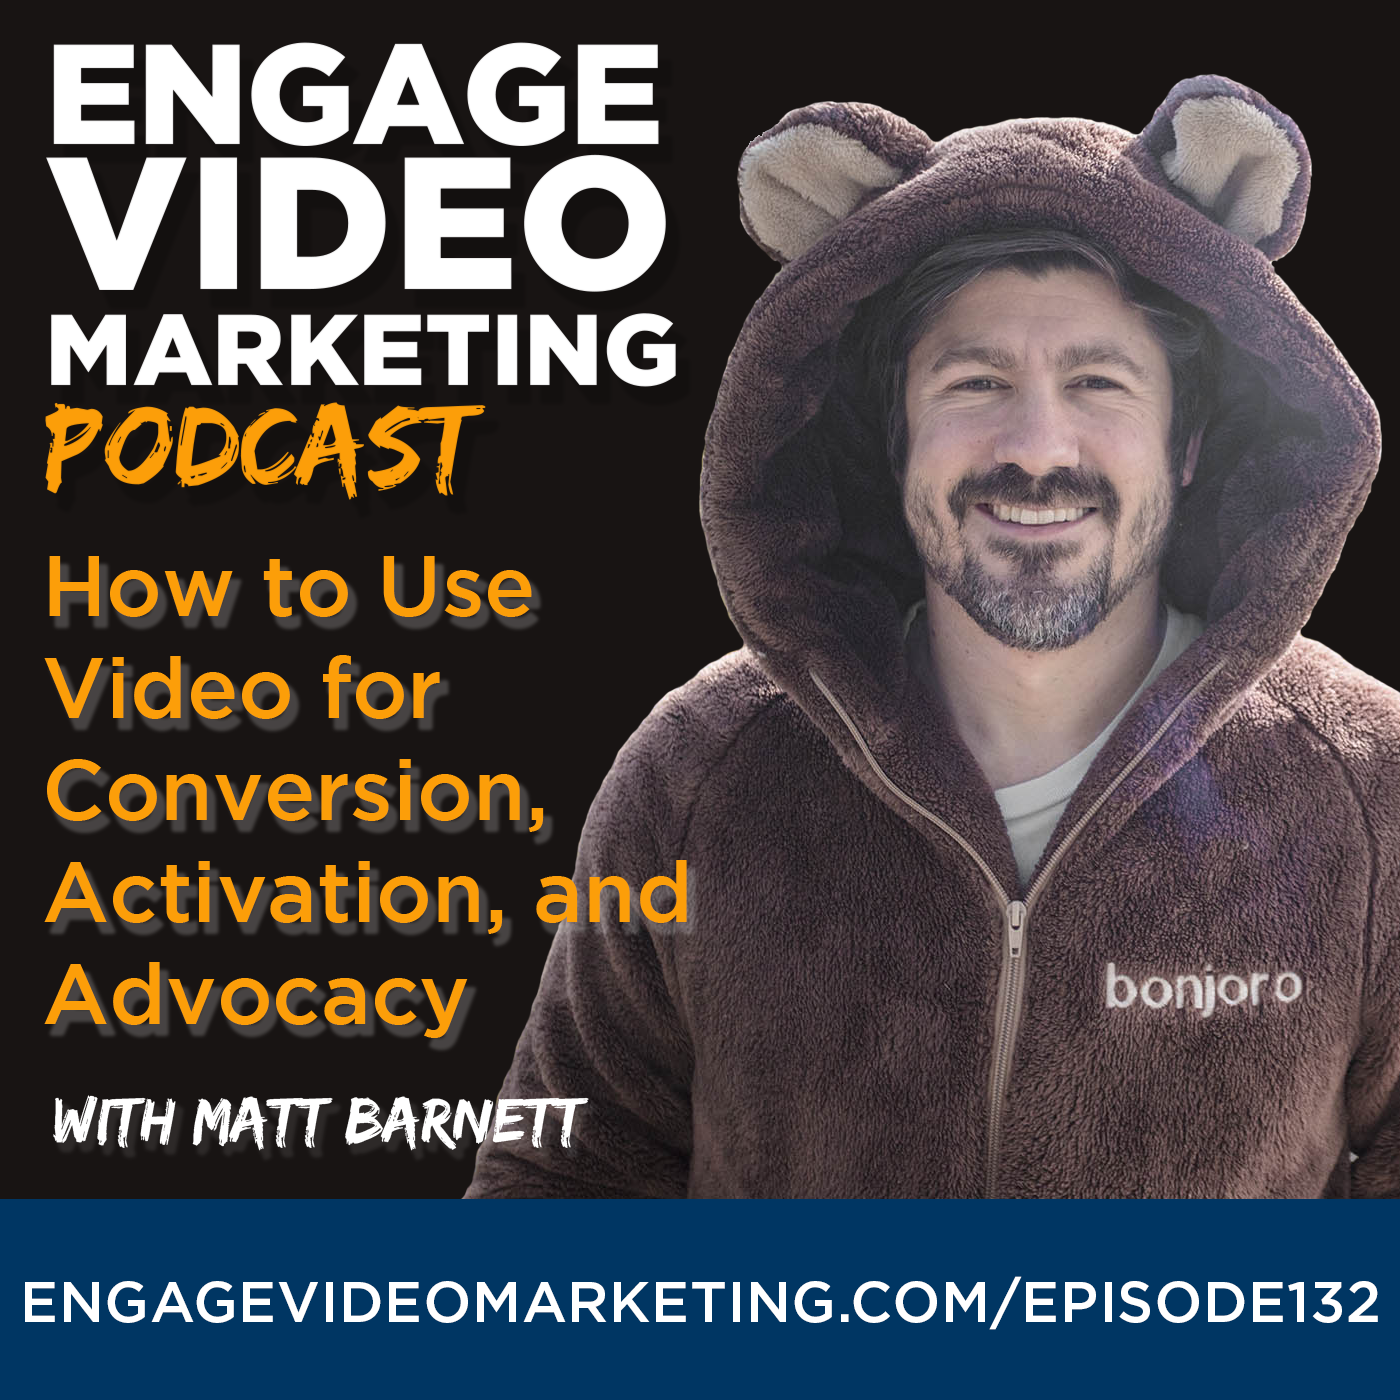 How to Use Video for Conversion, Activation and Advocacy with Matt Barnett